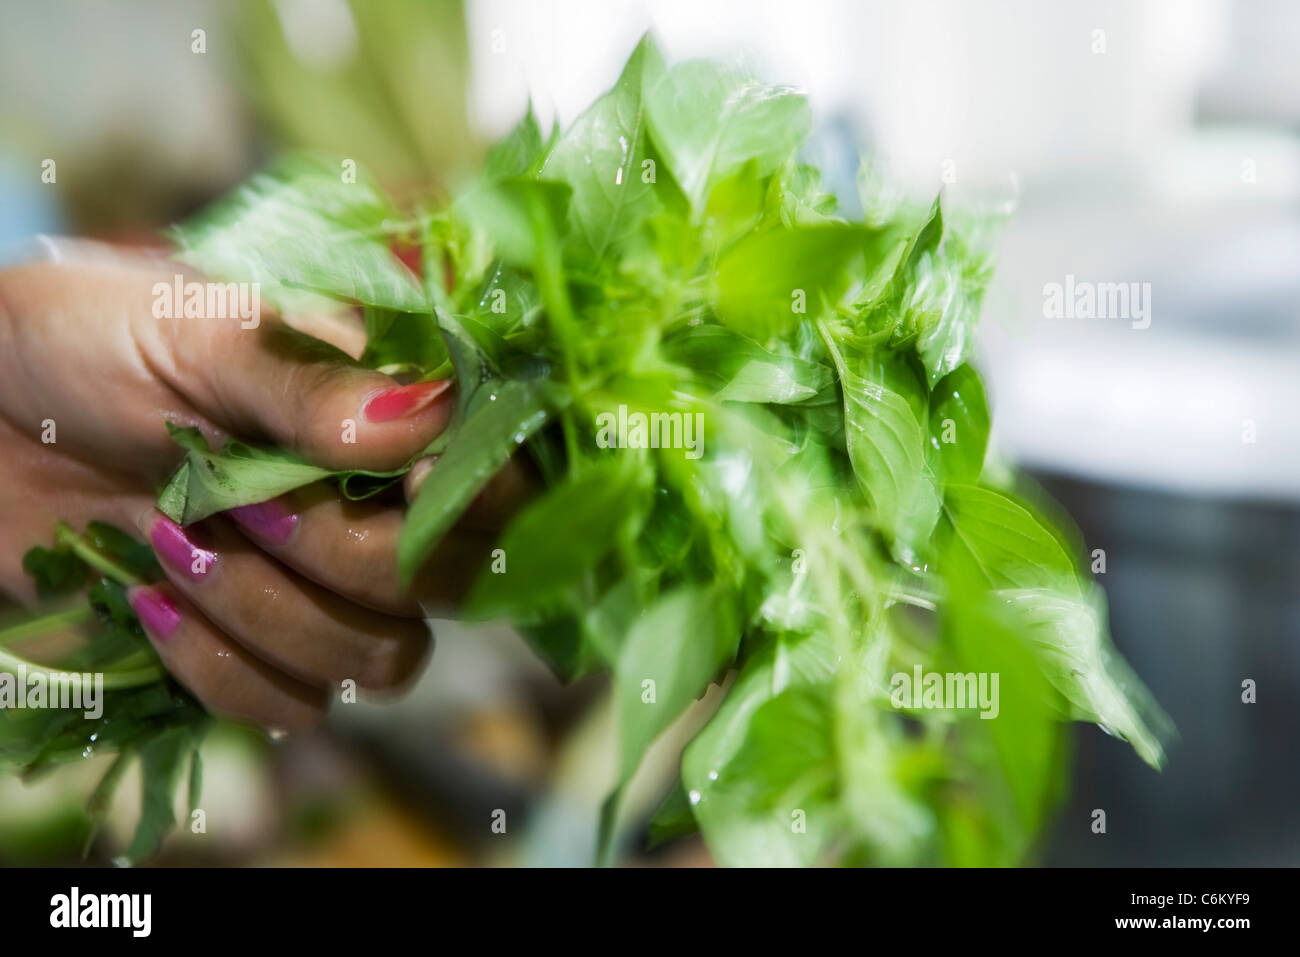 Holding bouquet de basilic frais Photo Stock